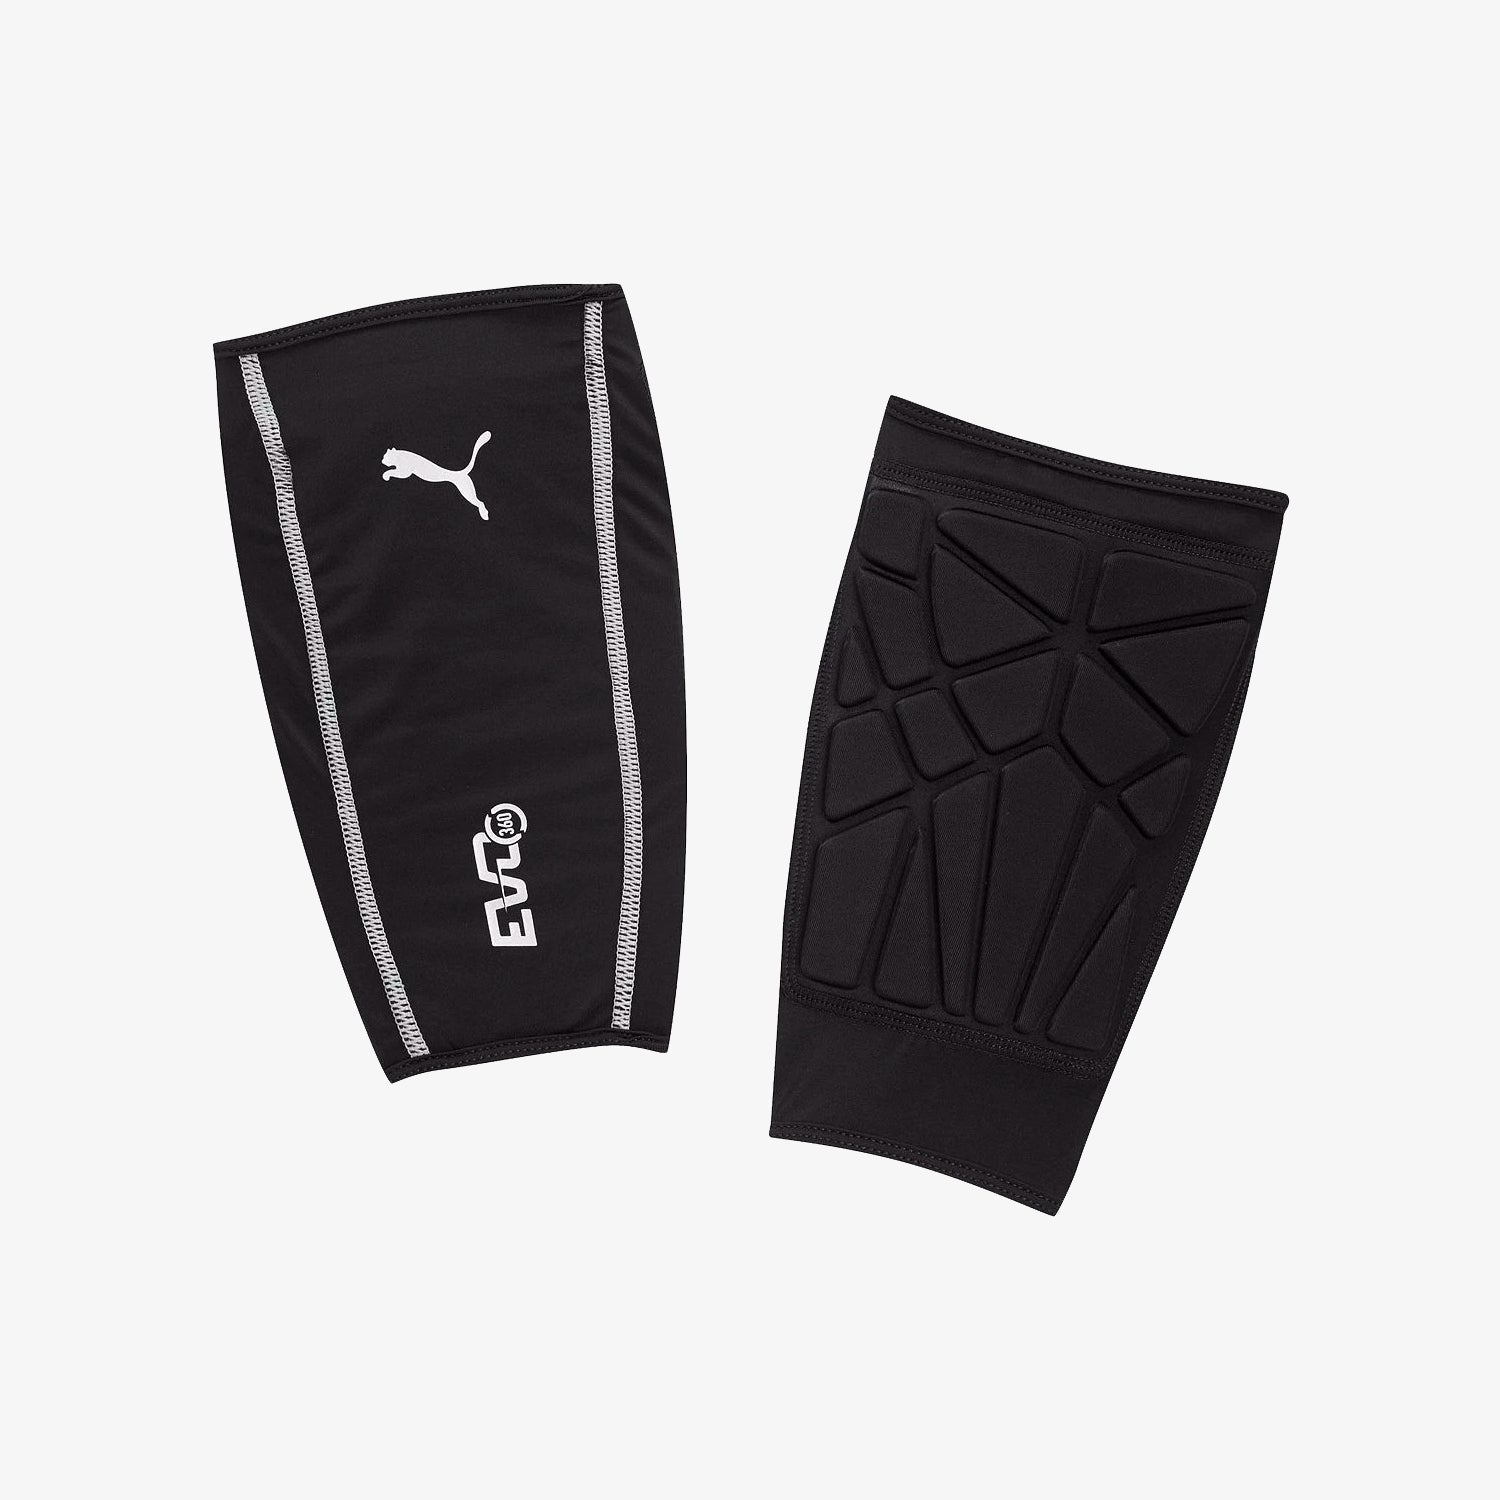 Evo360 Protect Shin Guard Sleeves - Black